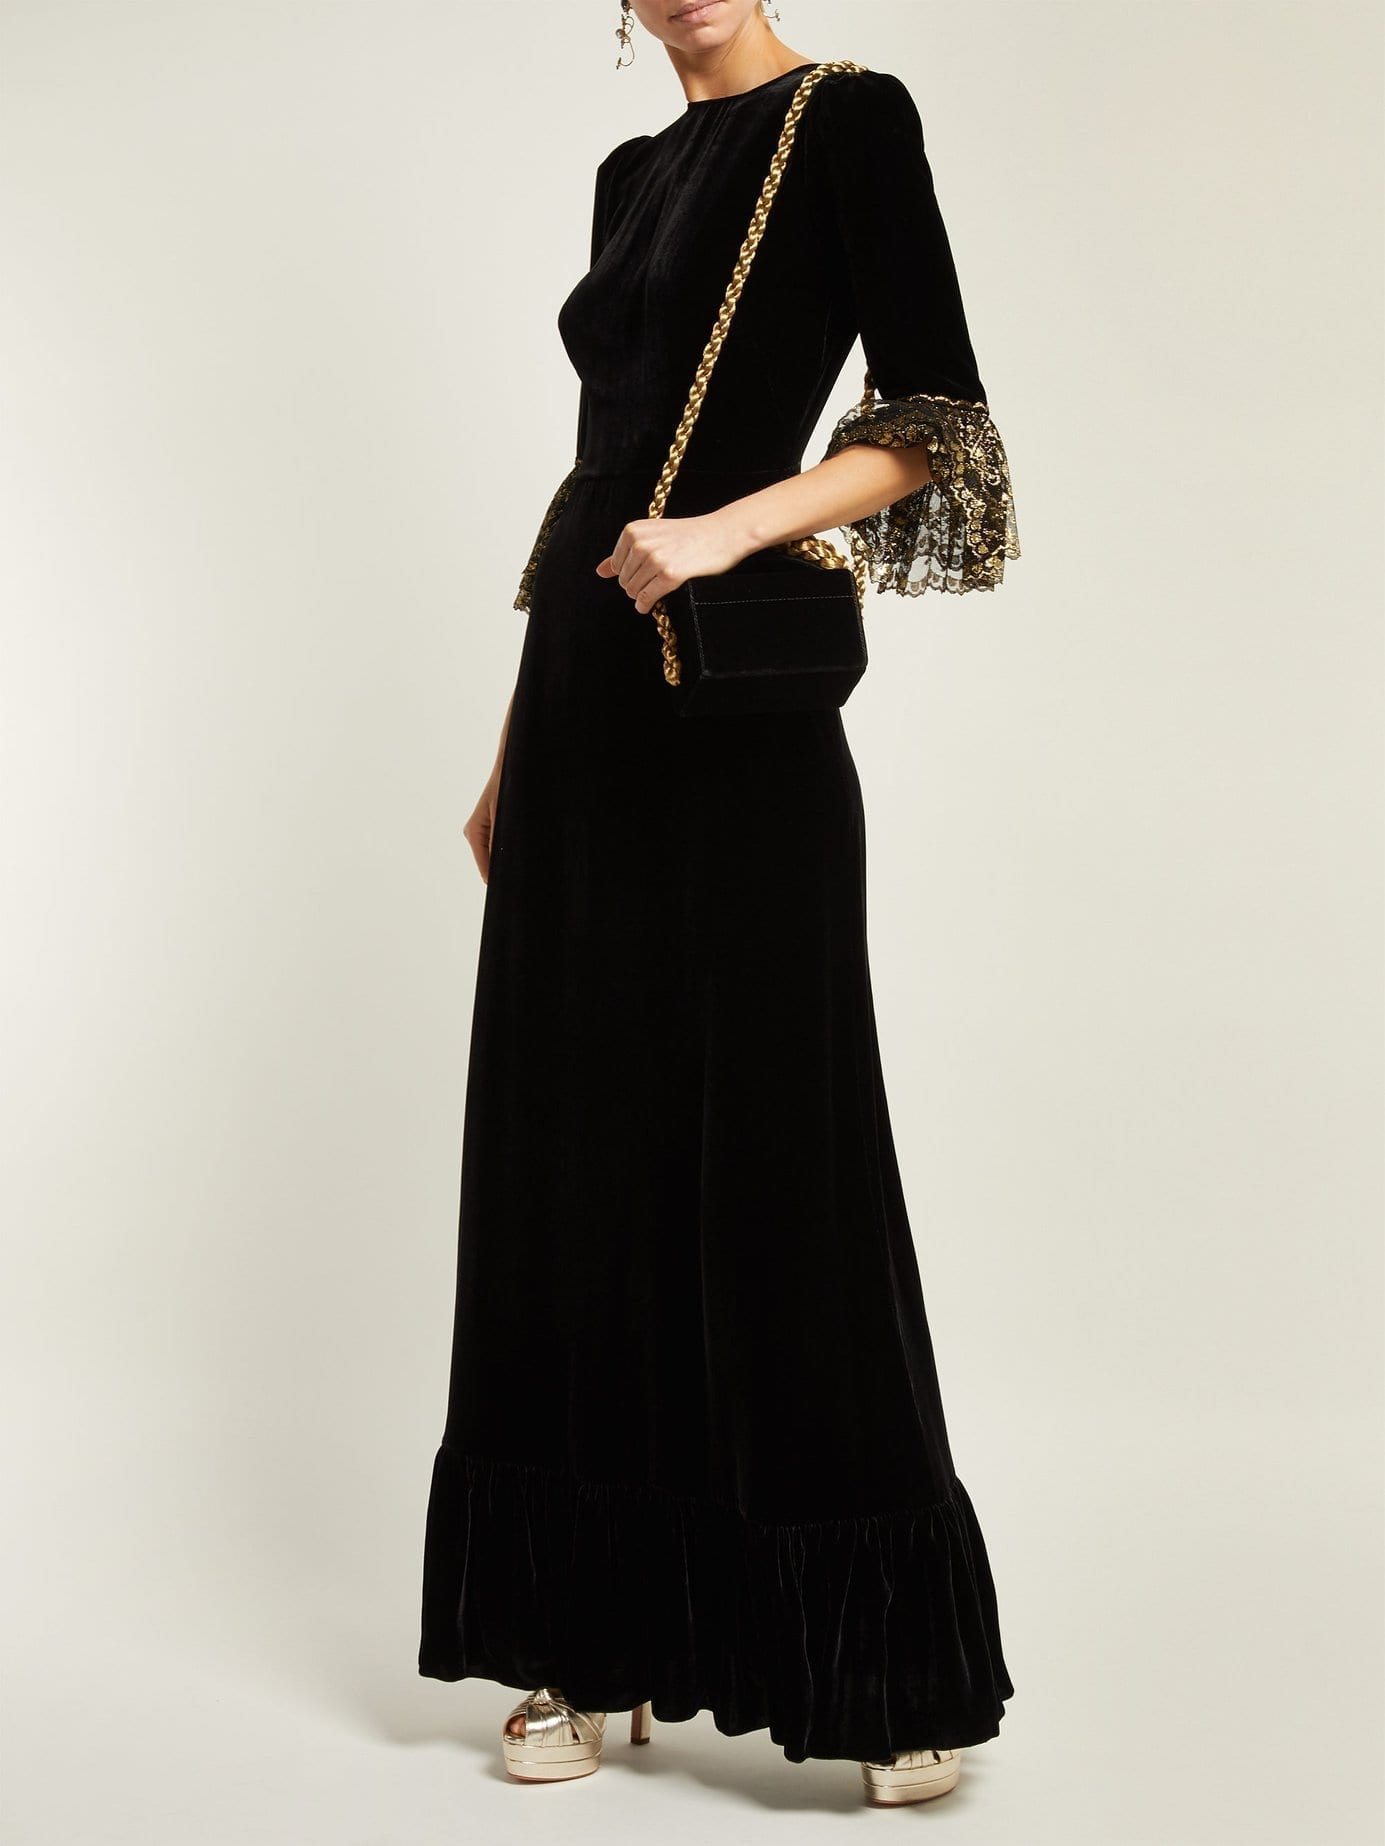 THE VAMPIRE'S WIFE Festival Lace-trimmed Velvet Midi Black Dress